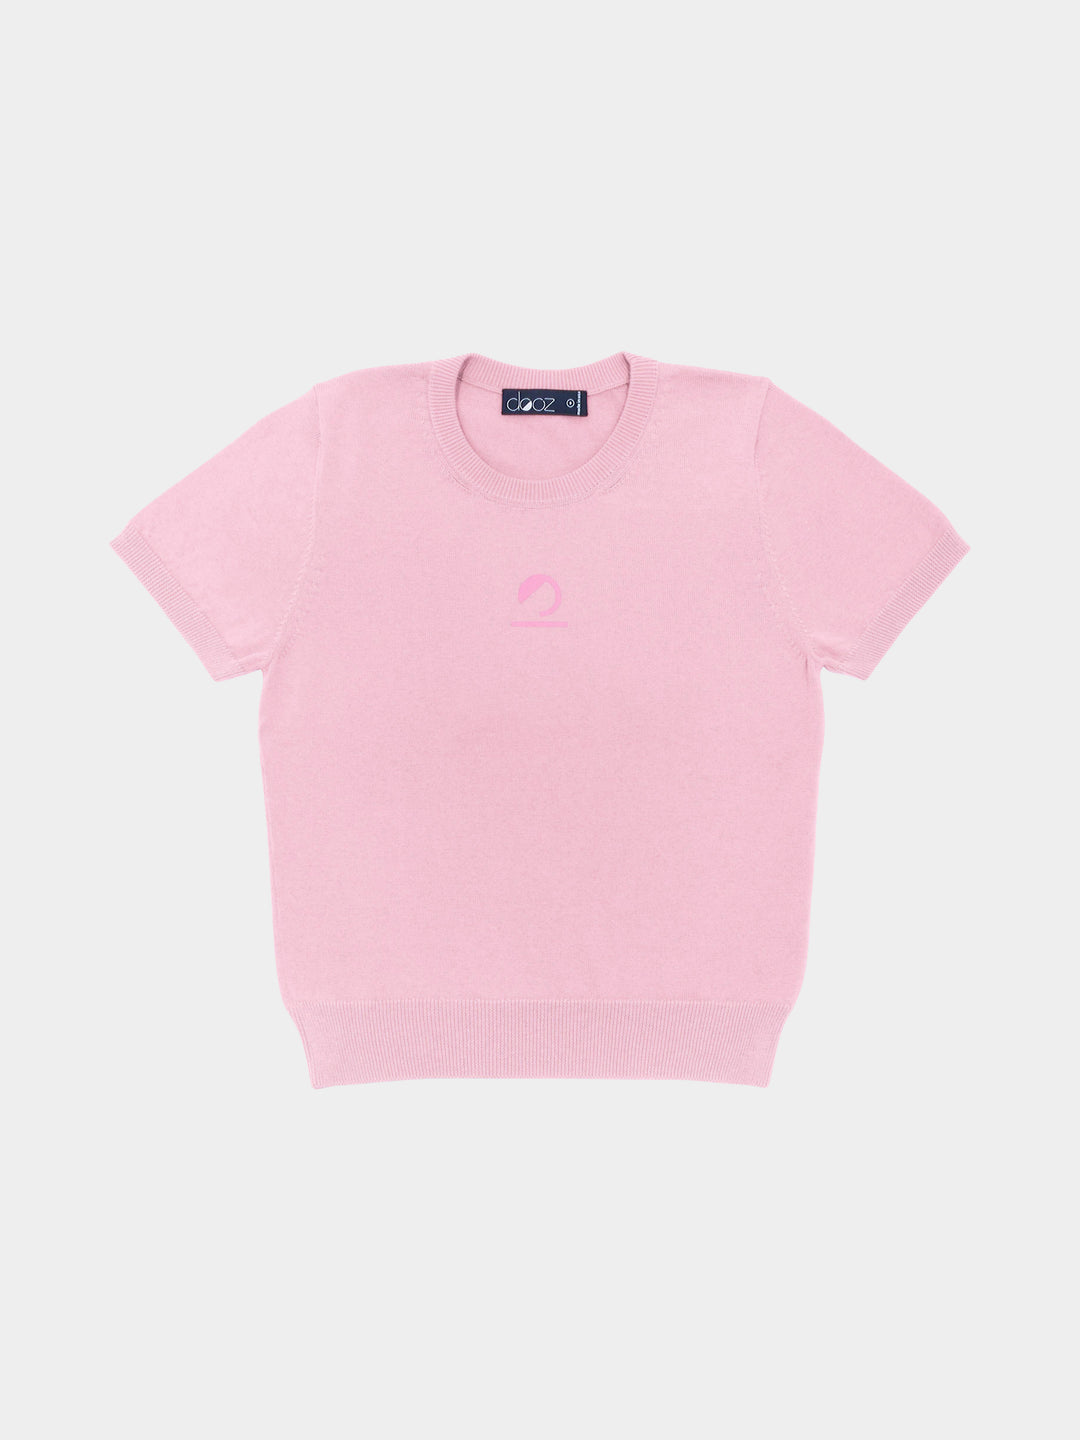 Libra Sweater-T in Blush